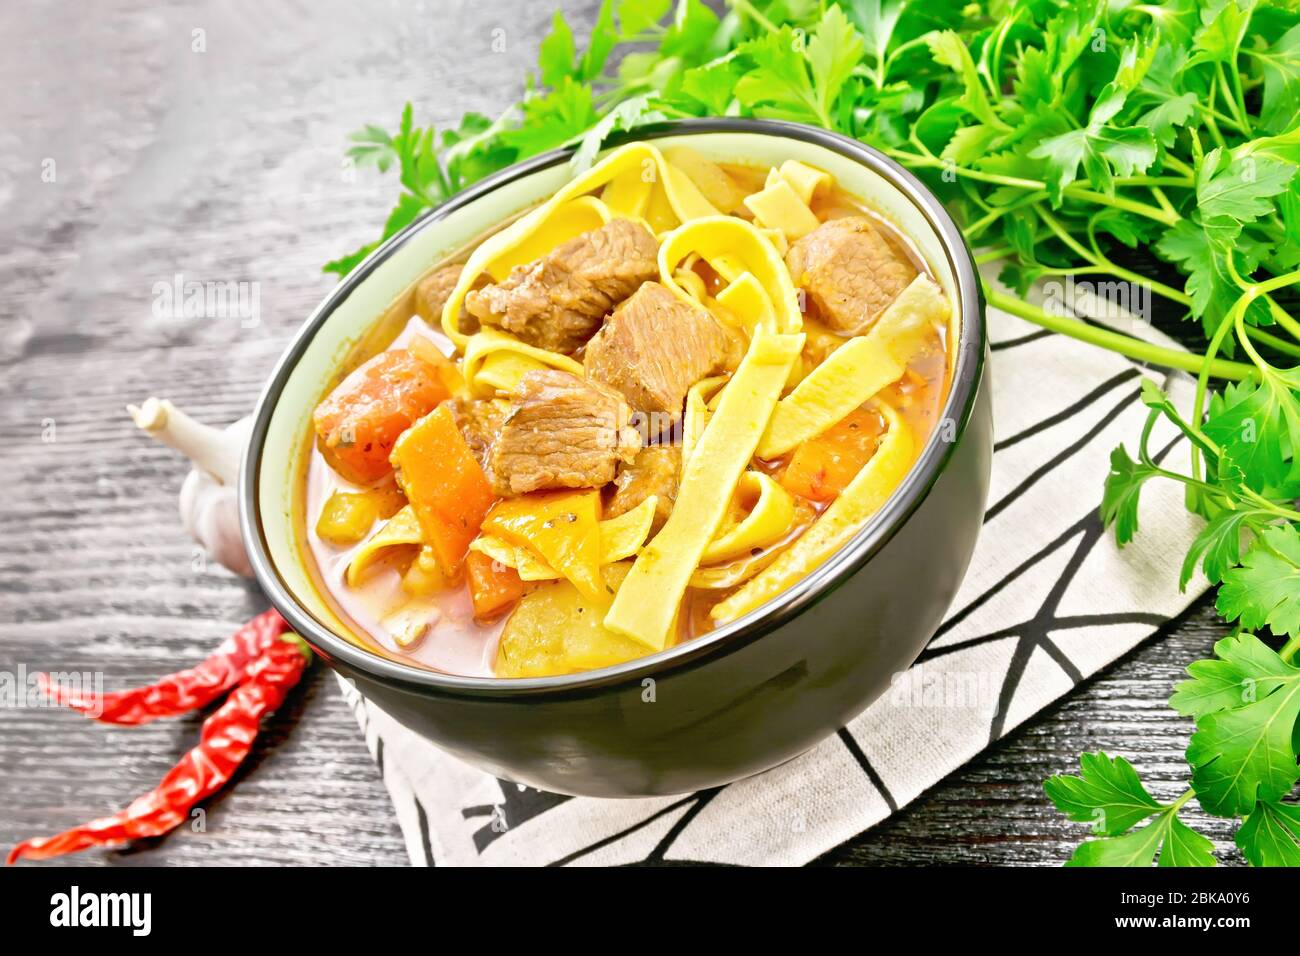 Central Asian national dish Lagman of meat, noodles and vegetables in bowl on a napkin, garlic, parsley on black wooden board Stock Photo